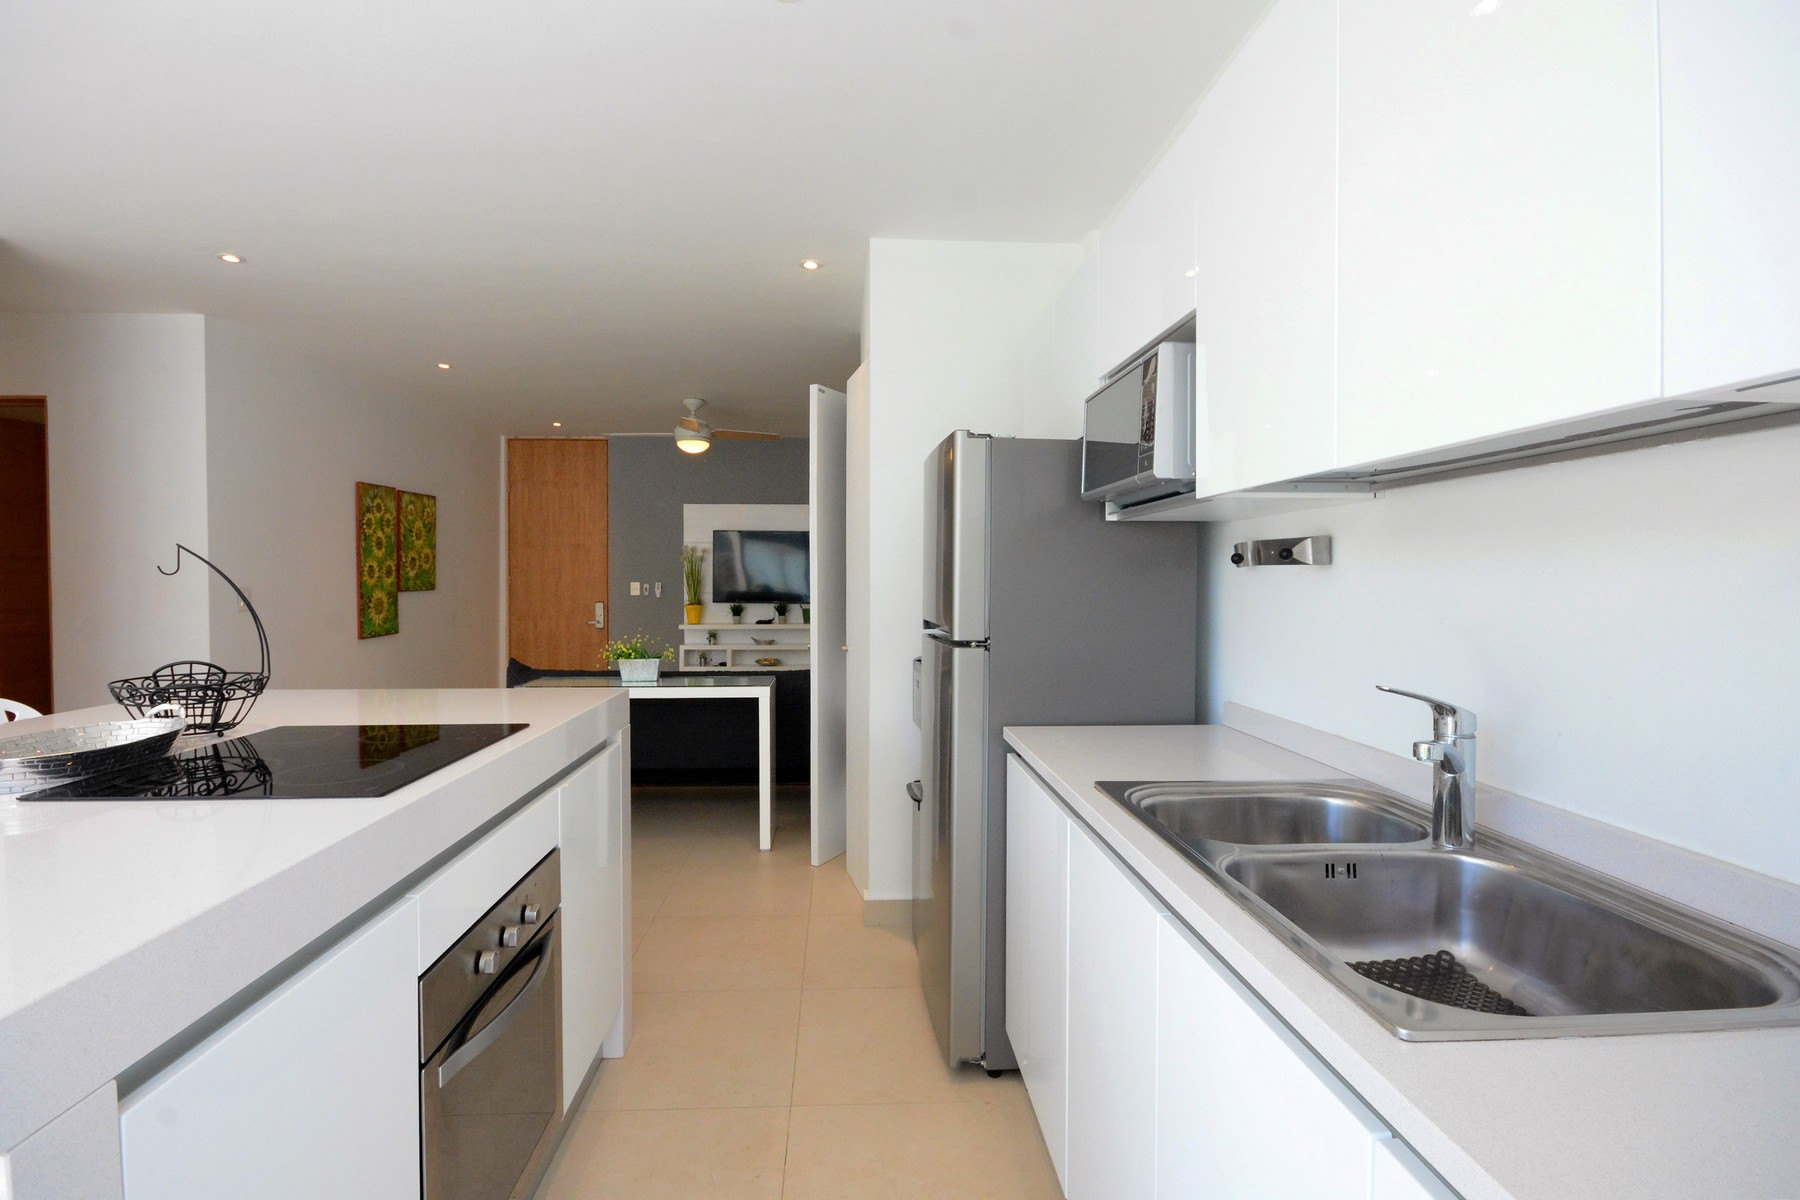 Additional photo for property listing at EXCLUSIVE COCO BEACH APARTMENT Exclusive Coco Beach Apartment 44th street, between 1st & 5th avenue Playa Del Carmen, Quintana Roo 77710 Mexico